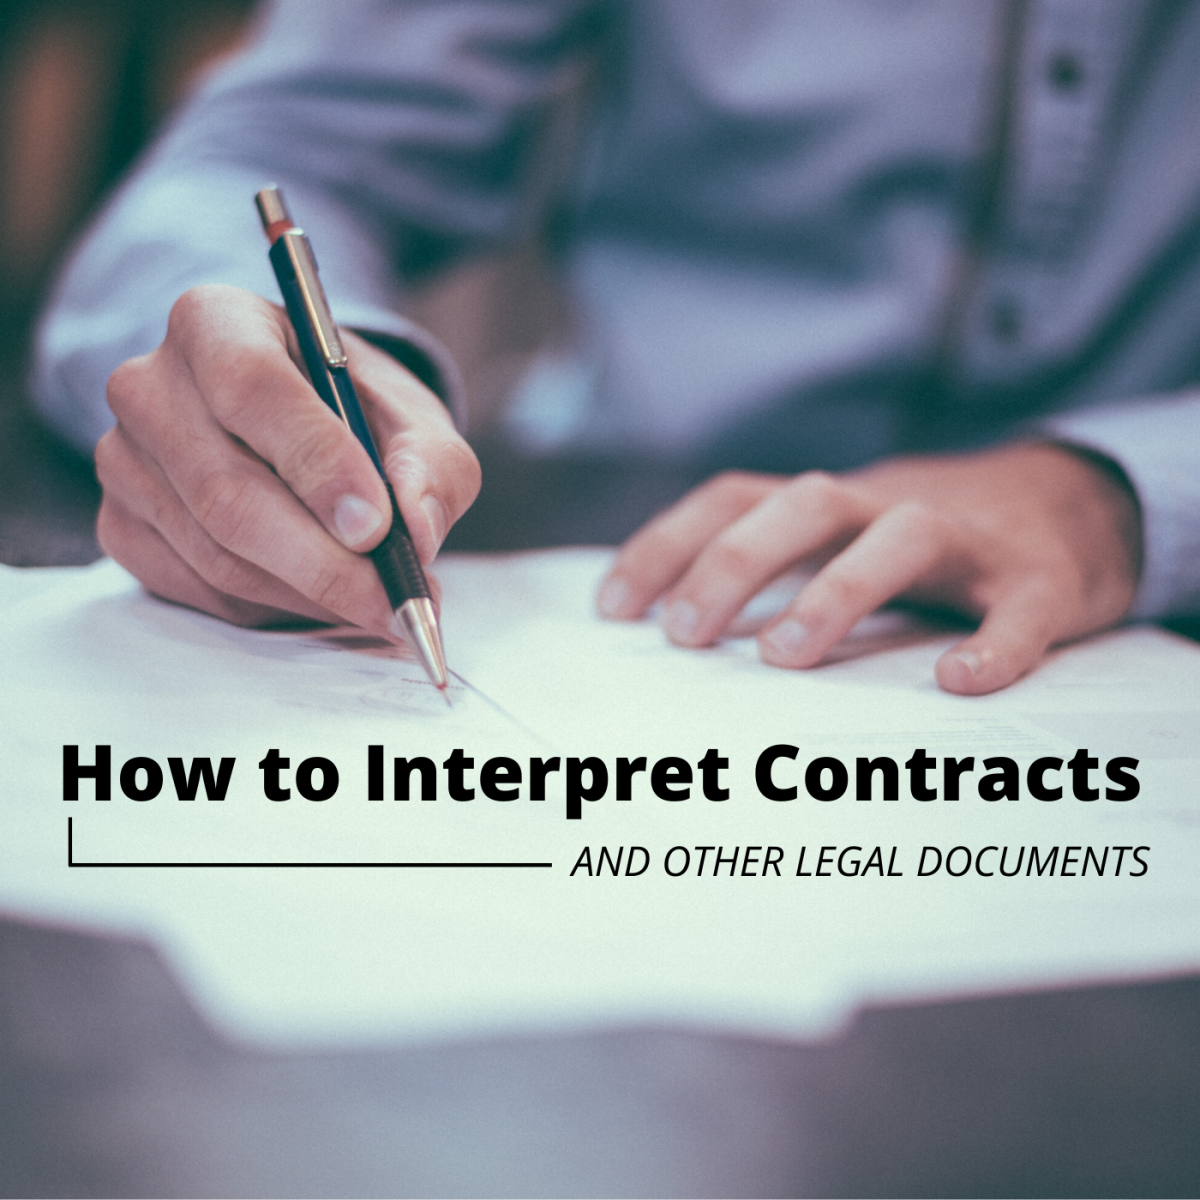 Before signing a legal document, it's important to understand its implications and negotiate for any changes you deem necessary.